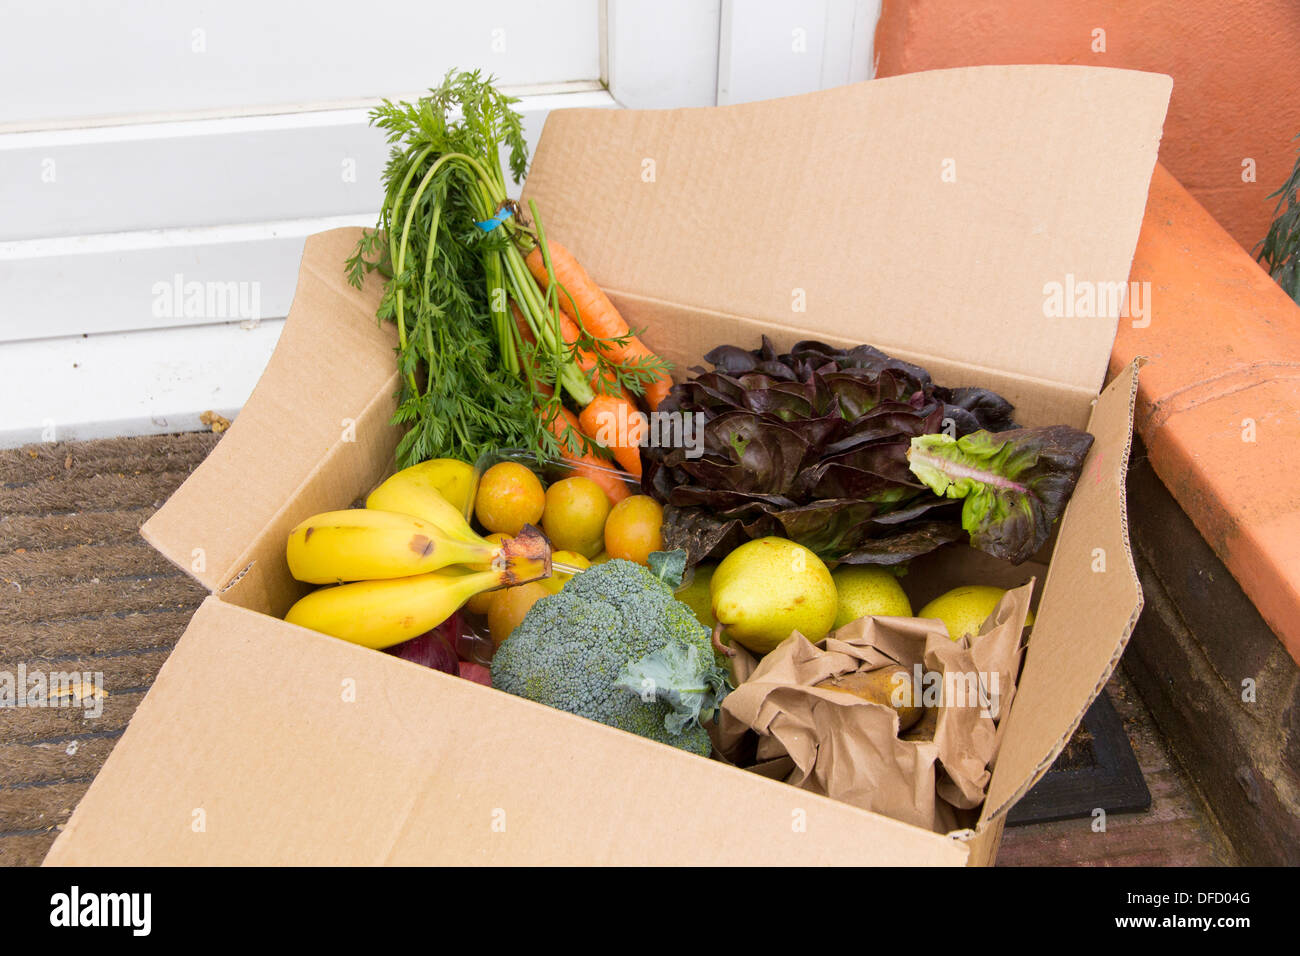 26 July 2013, Brighton, UK: An organic fruit and vegetable box delivered by Abel and Cole sits on a doorstep - Stock Image